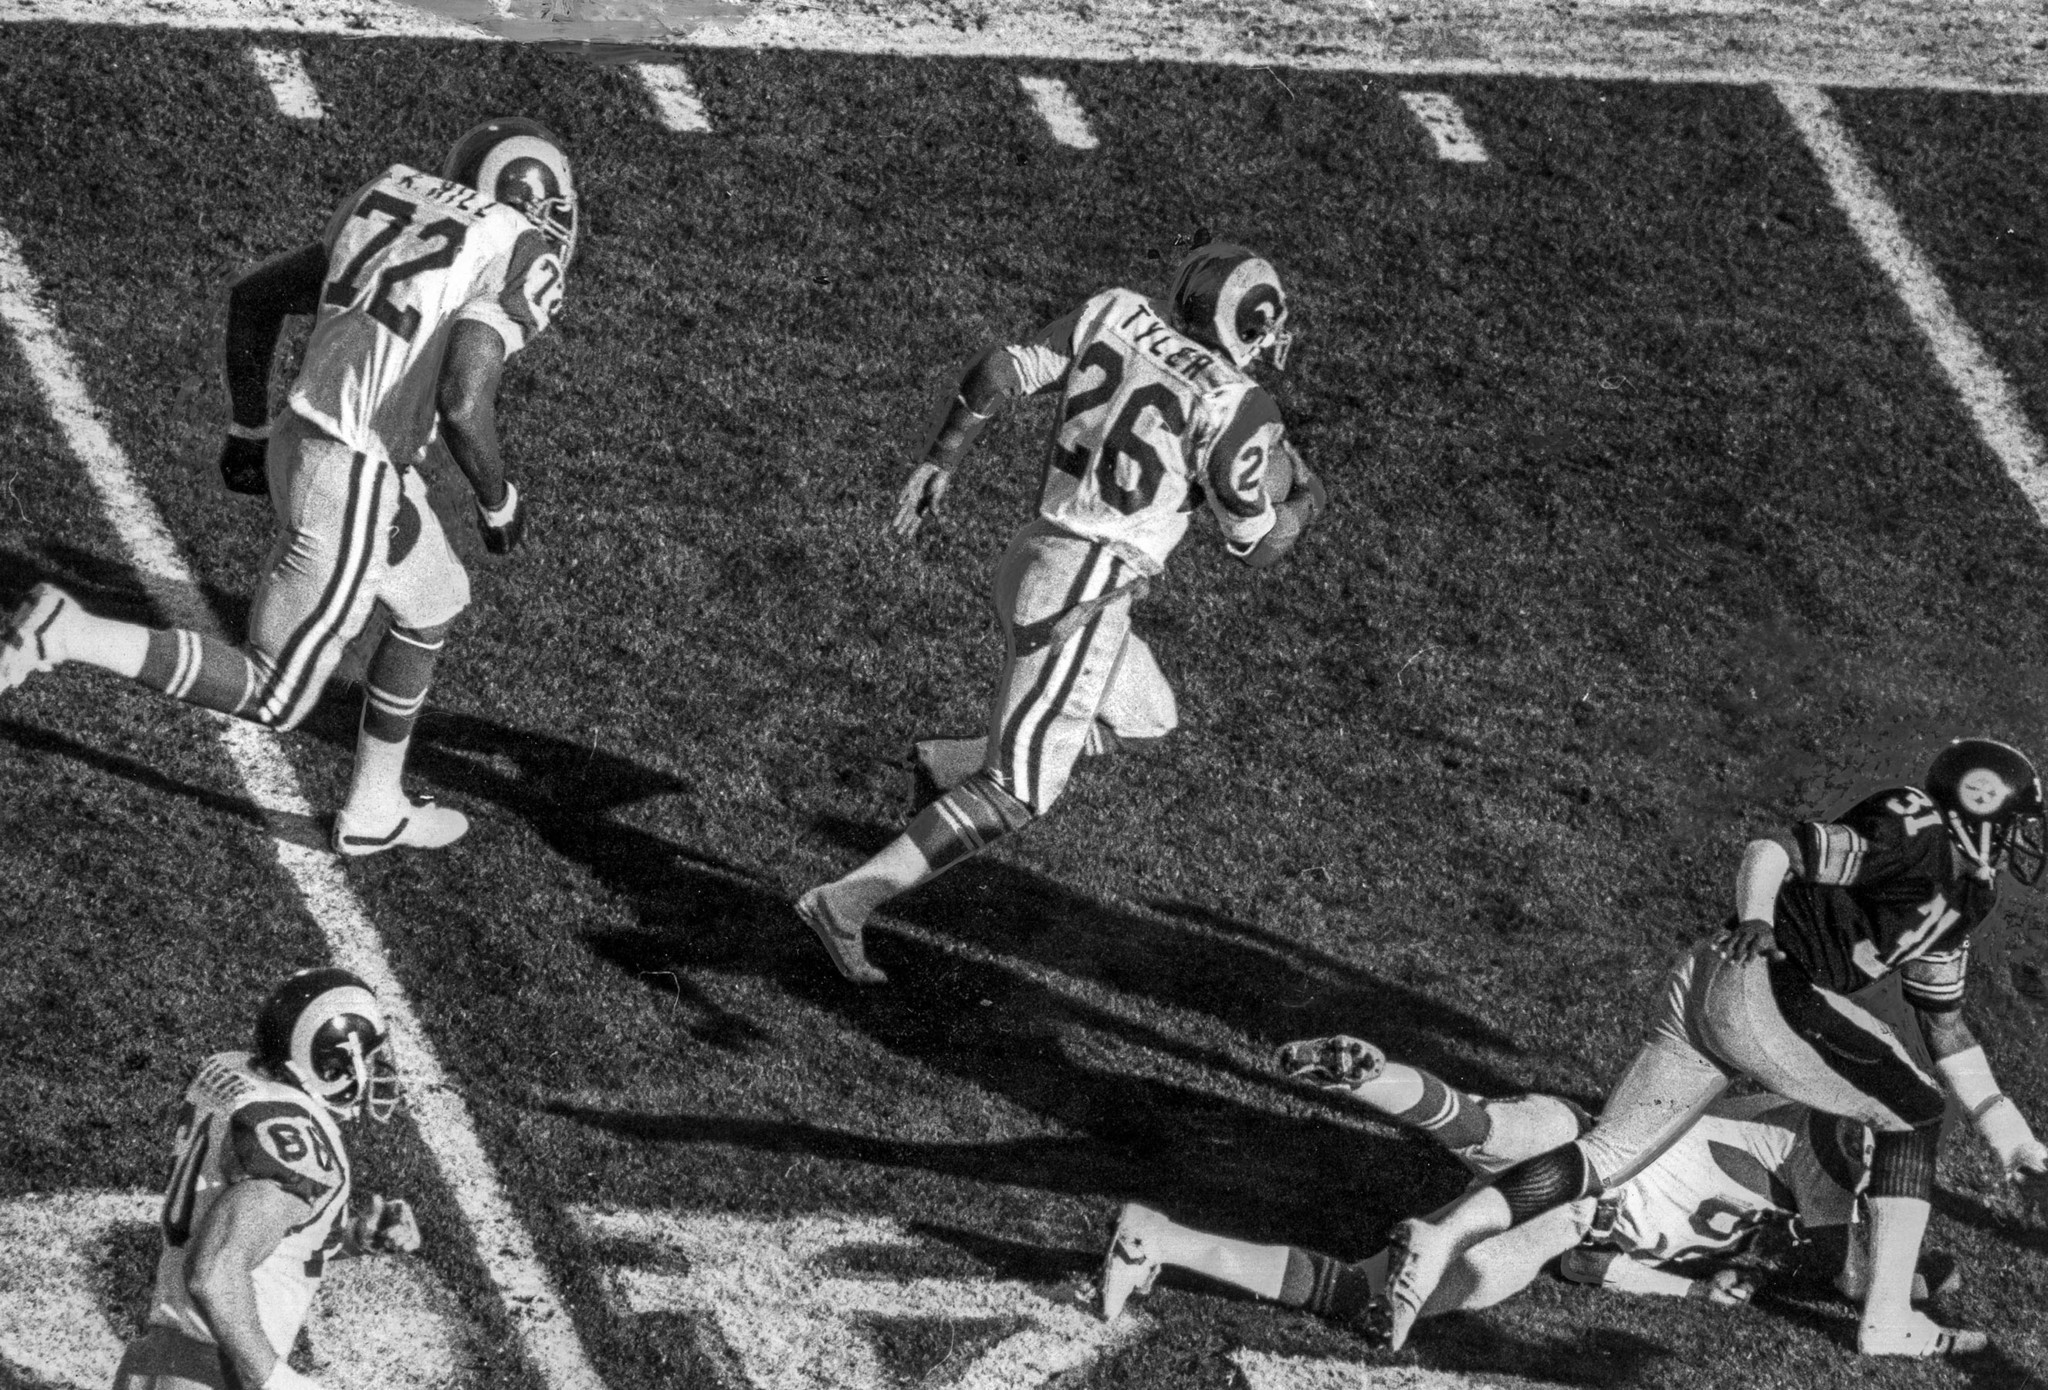 Jan. 20, 1980: Rams Wendell Tyler breaks loose for a 39-yard run in the first quarter. Donnie Shell